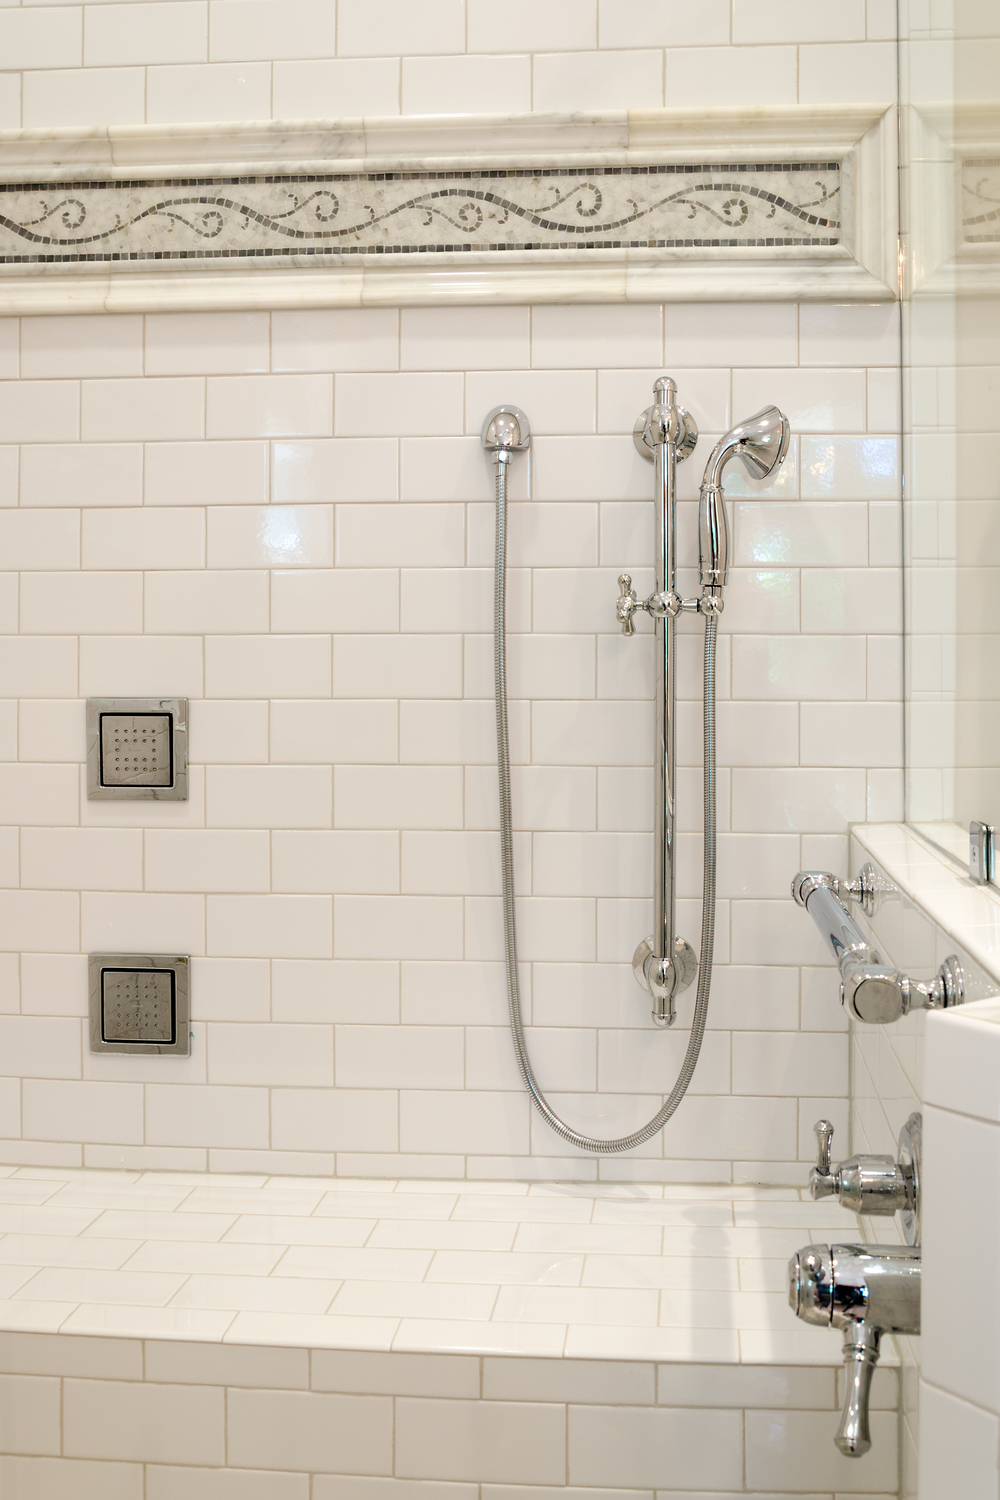 Custom-Kitchens-Wolenberg-Master-Bath-Shower-Detail-52214.jpg